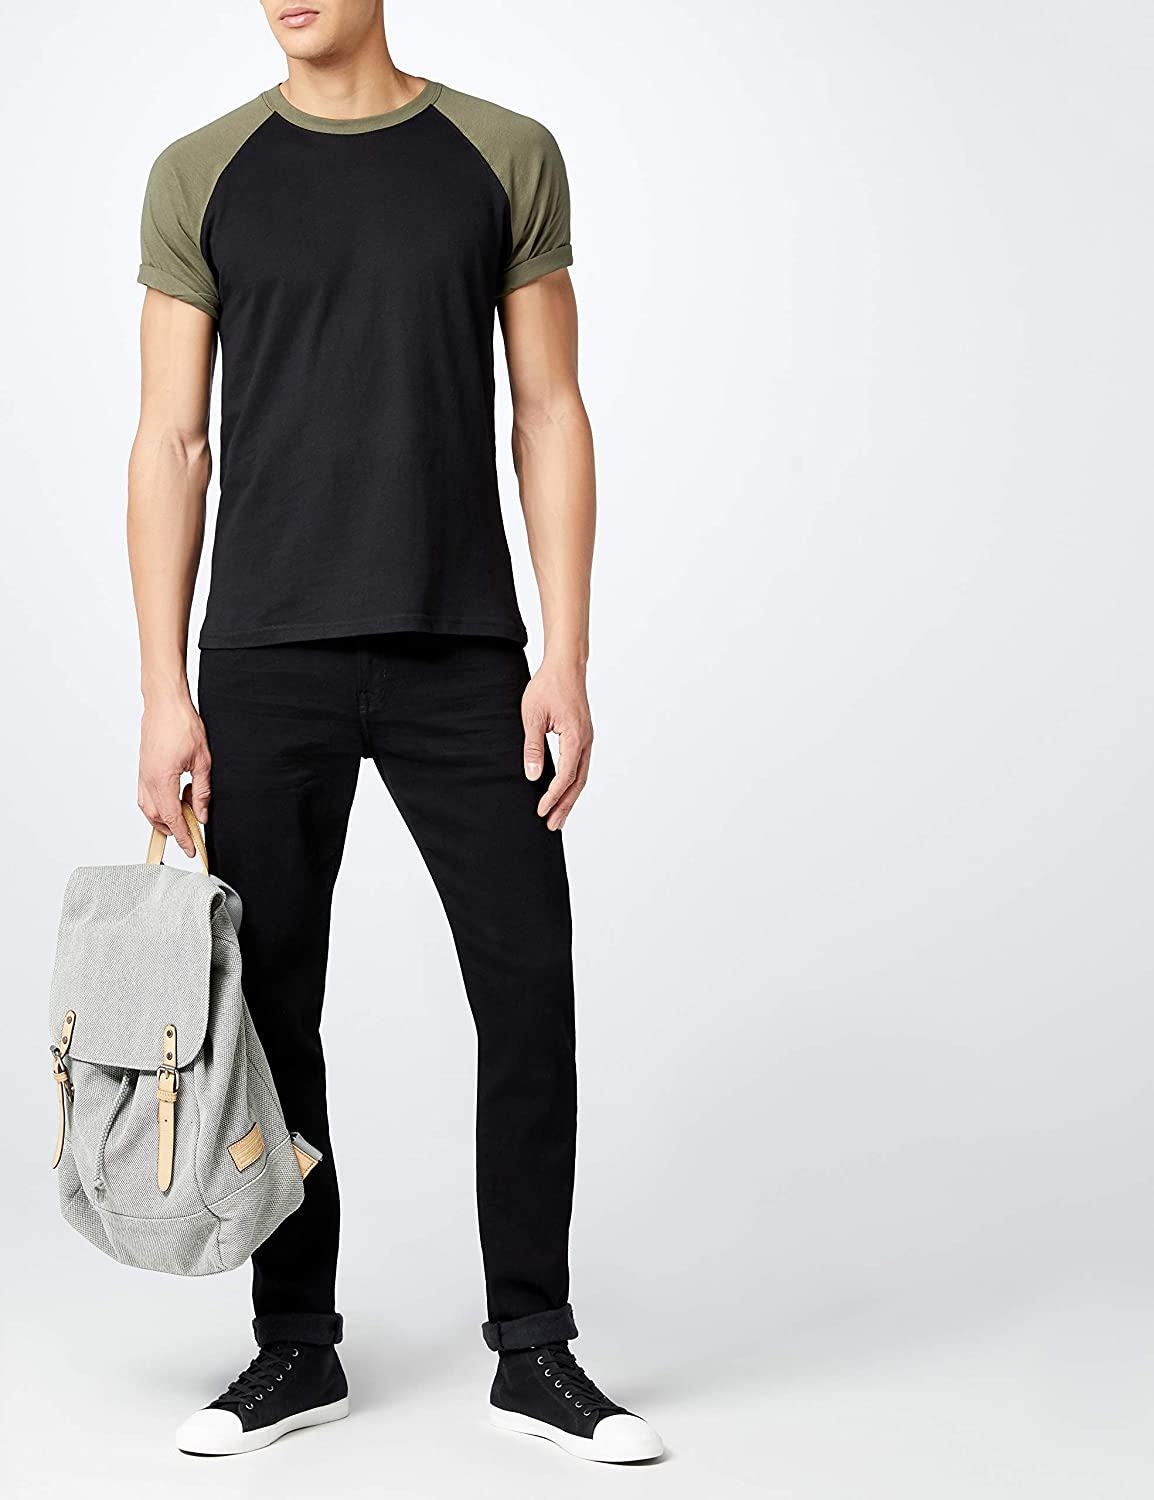 Urban Classics Men's Baseball T-Shirt, Contrast Shortsleeves T-Shirt, Sports Shirt, Crew Neck, 100% Jersey Cotton, Different Colours Available, Sizes: S-5XL Olive/Black